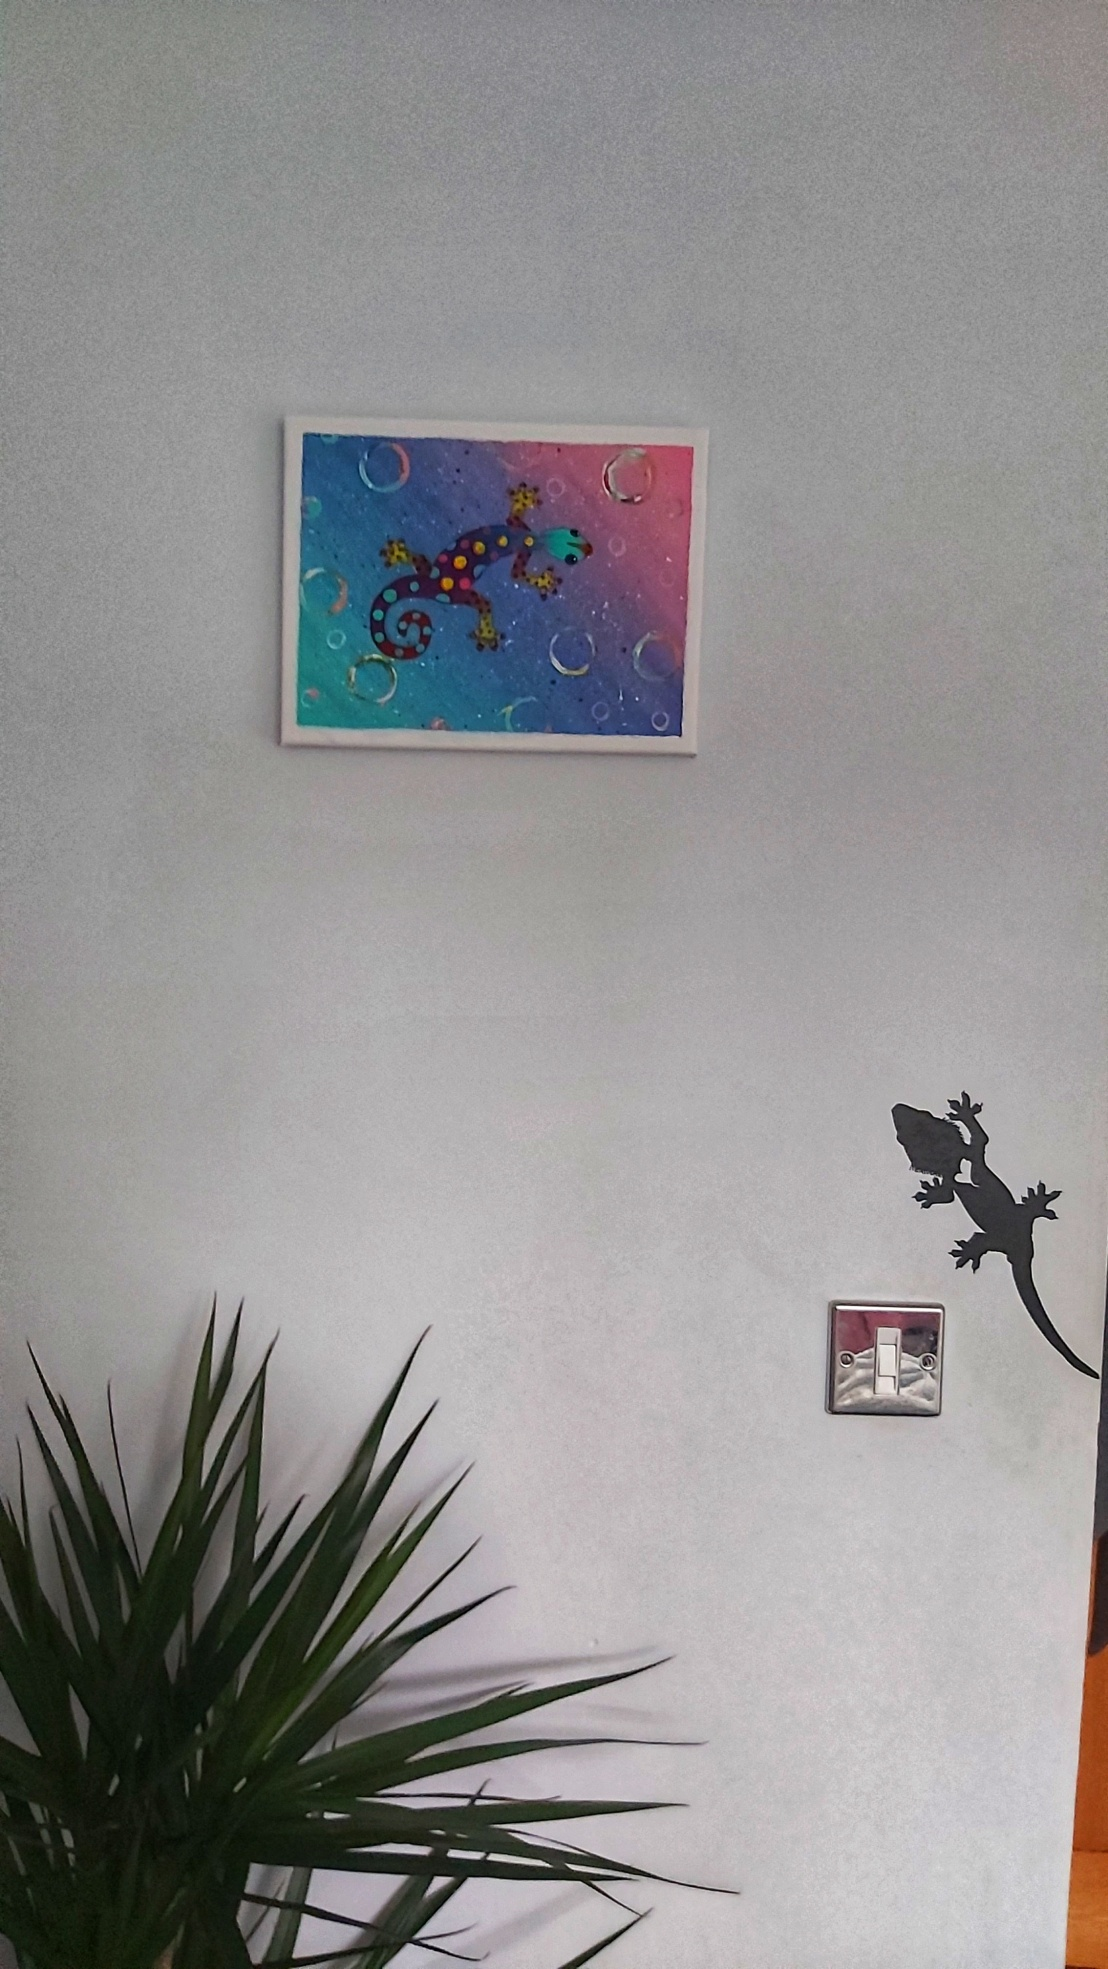 Acrylic gecko painting hanging on a wall